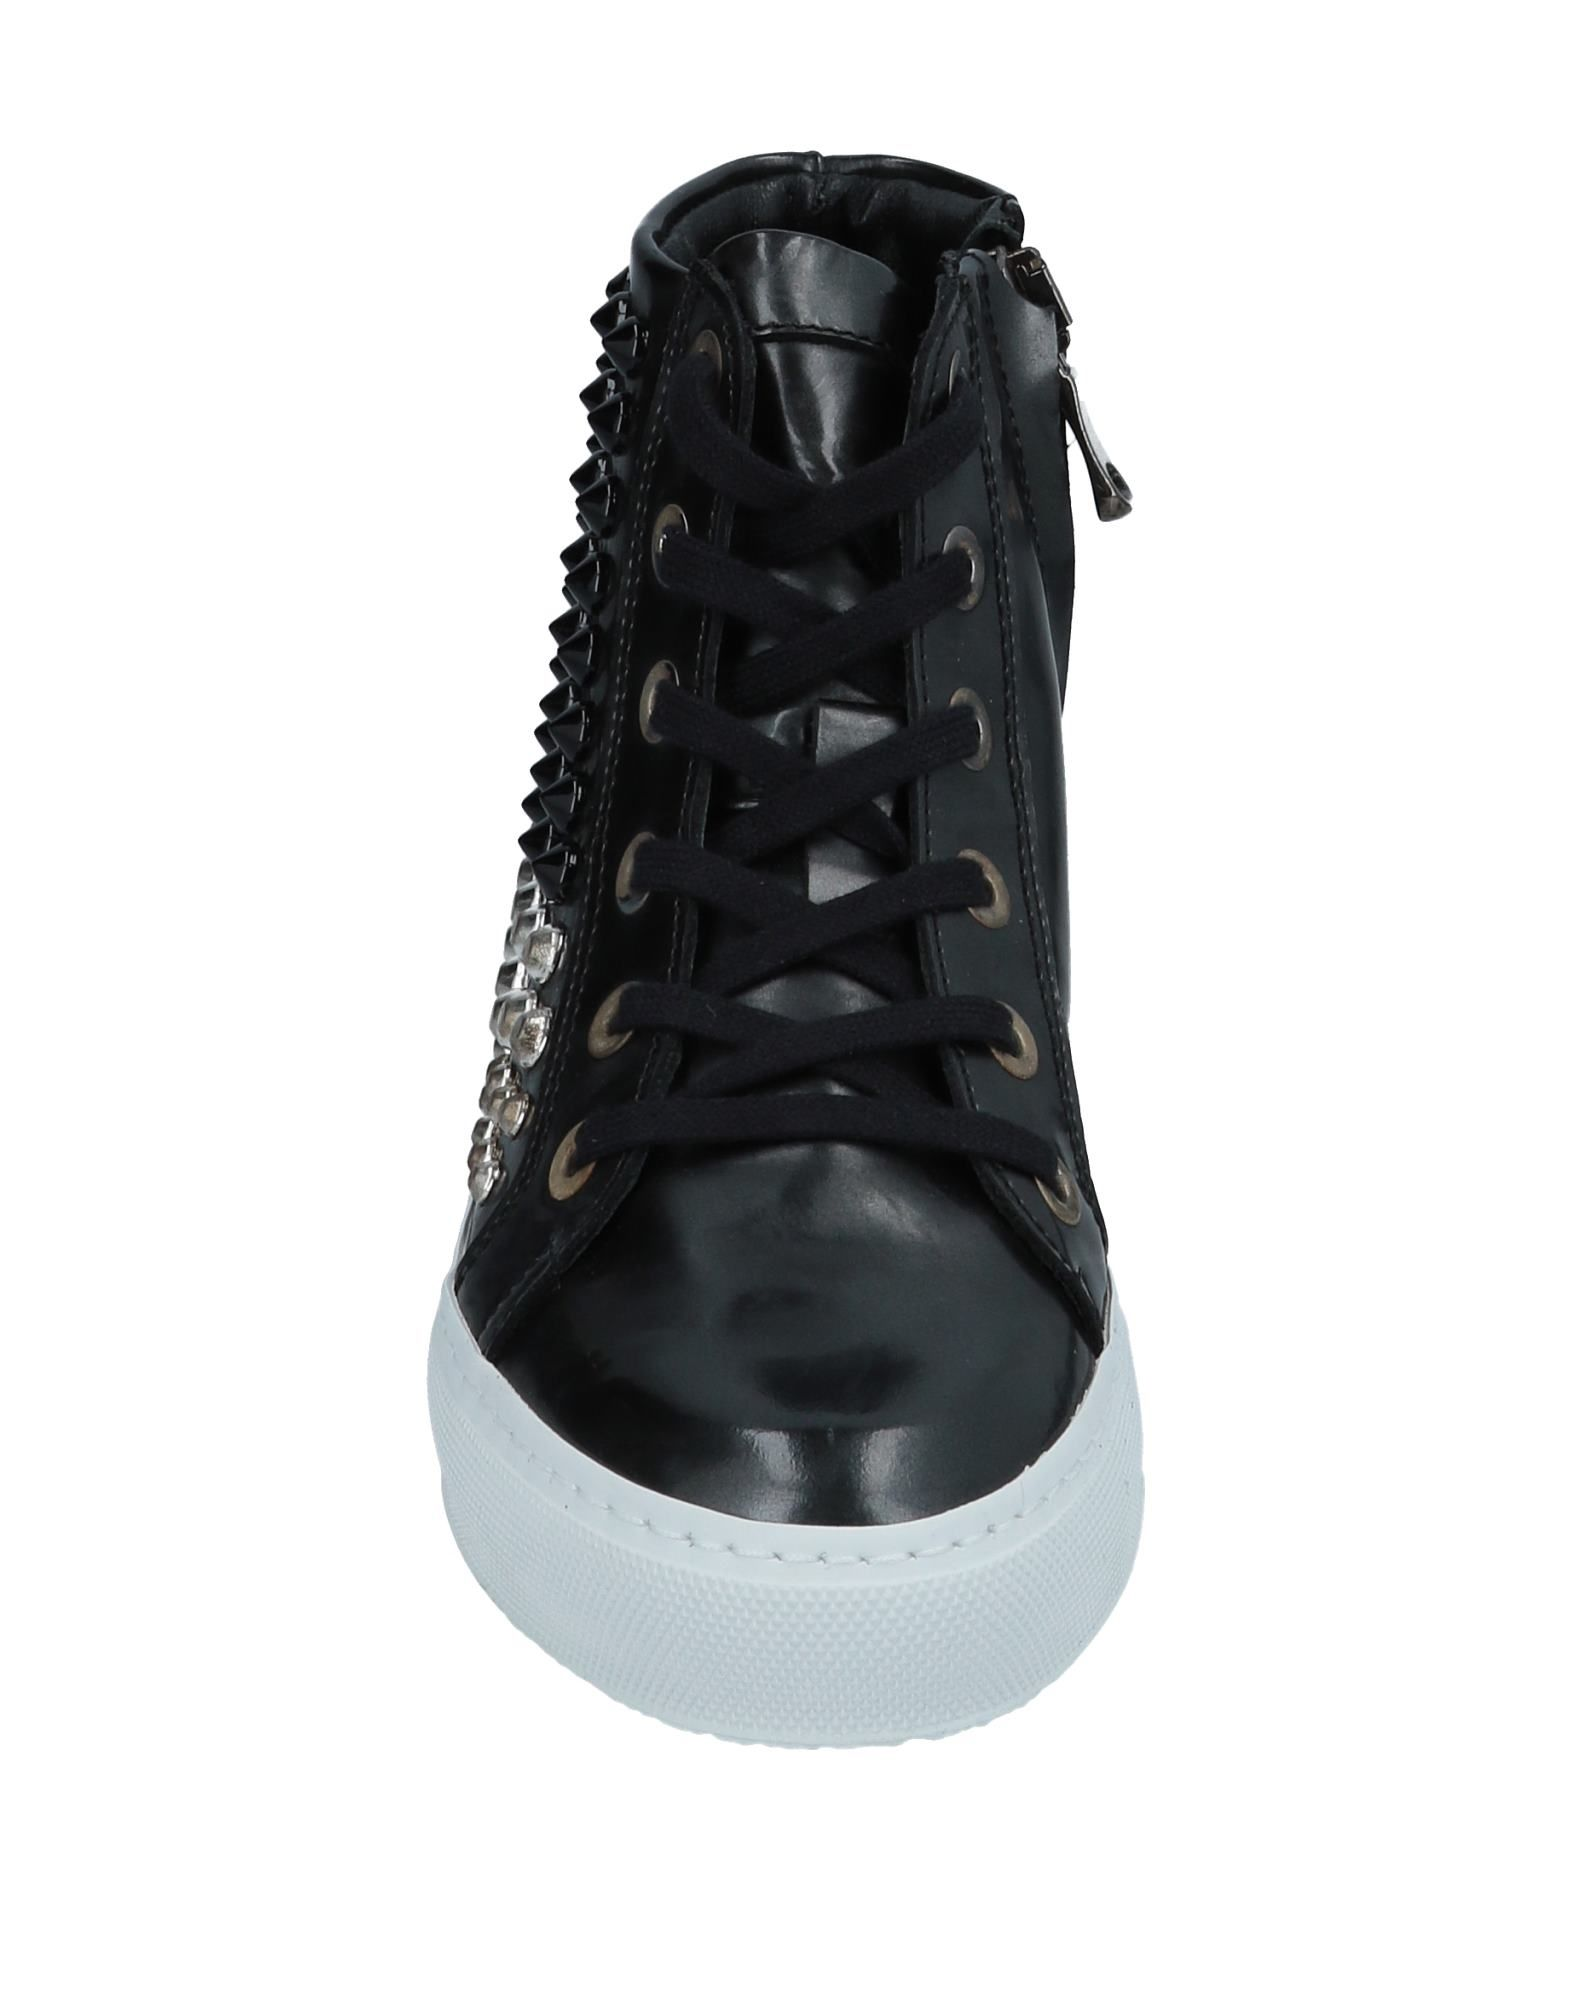 Asylum Asylum Asylum Sneakers - Women Asylum Sneakers online on  United Kingdom - 11577937IR 4b7b06